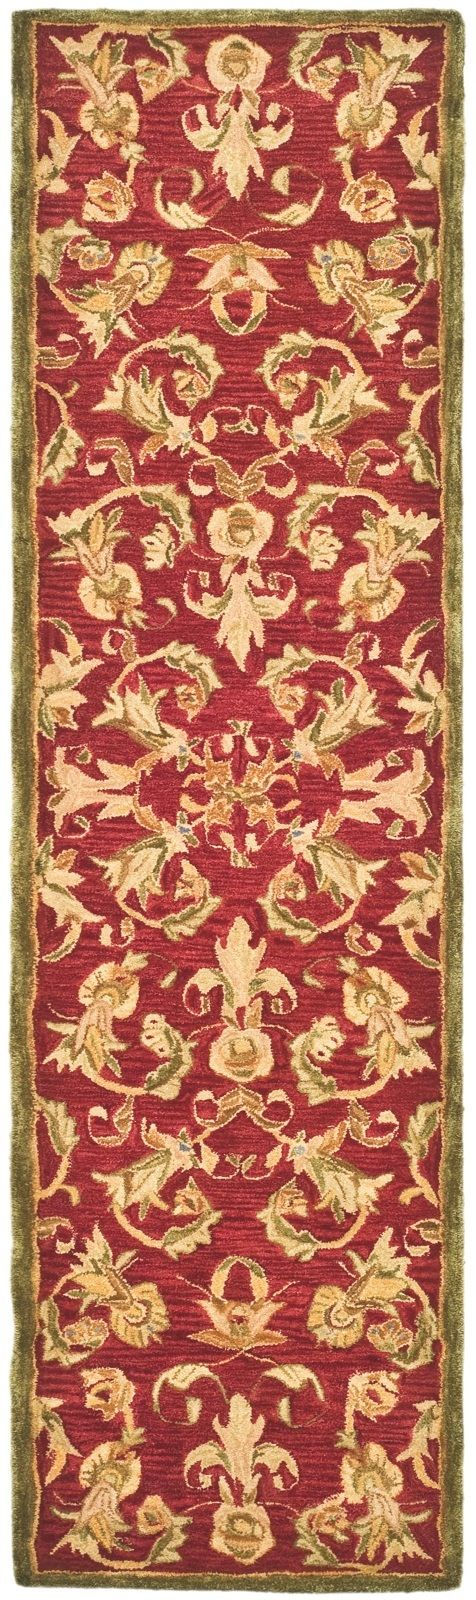 safavieh anatolia transitional area rug collection